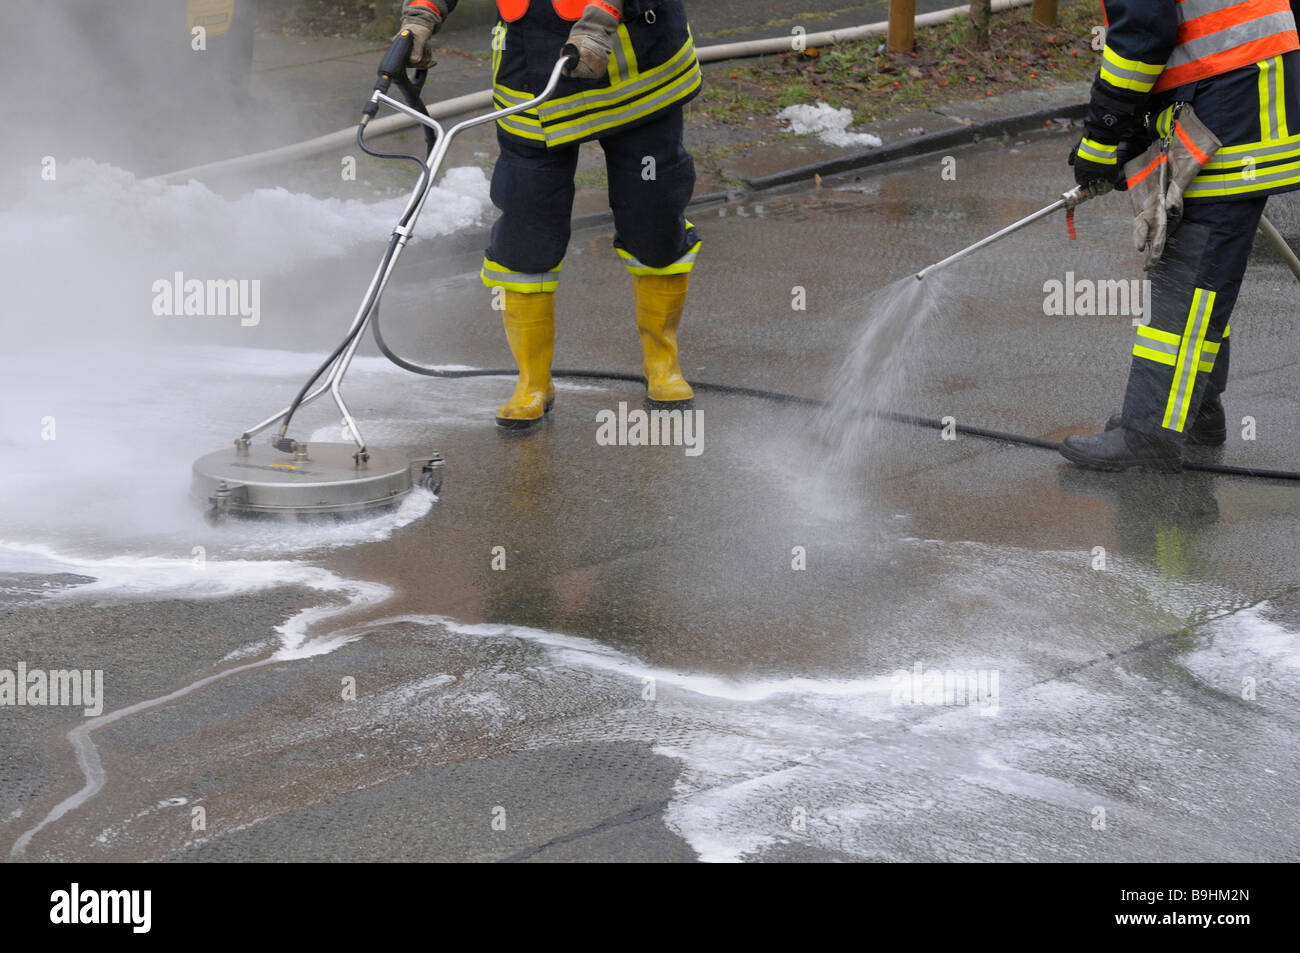 Fire brigade in action, neutralising leaked brake fluid with cleaning equipment and water nozzles - Stock Image